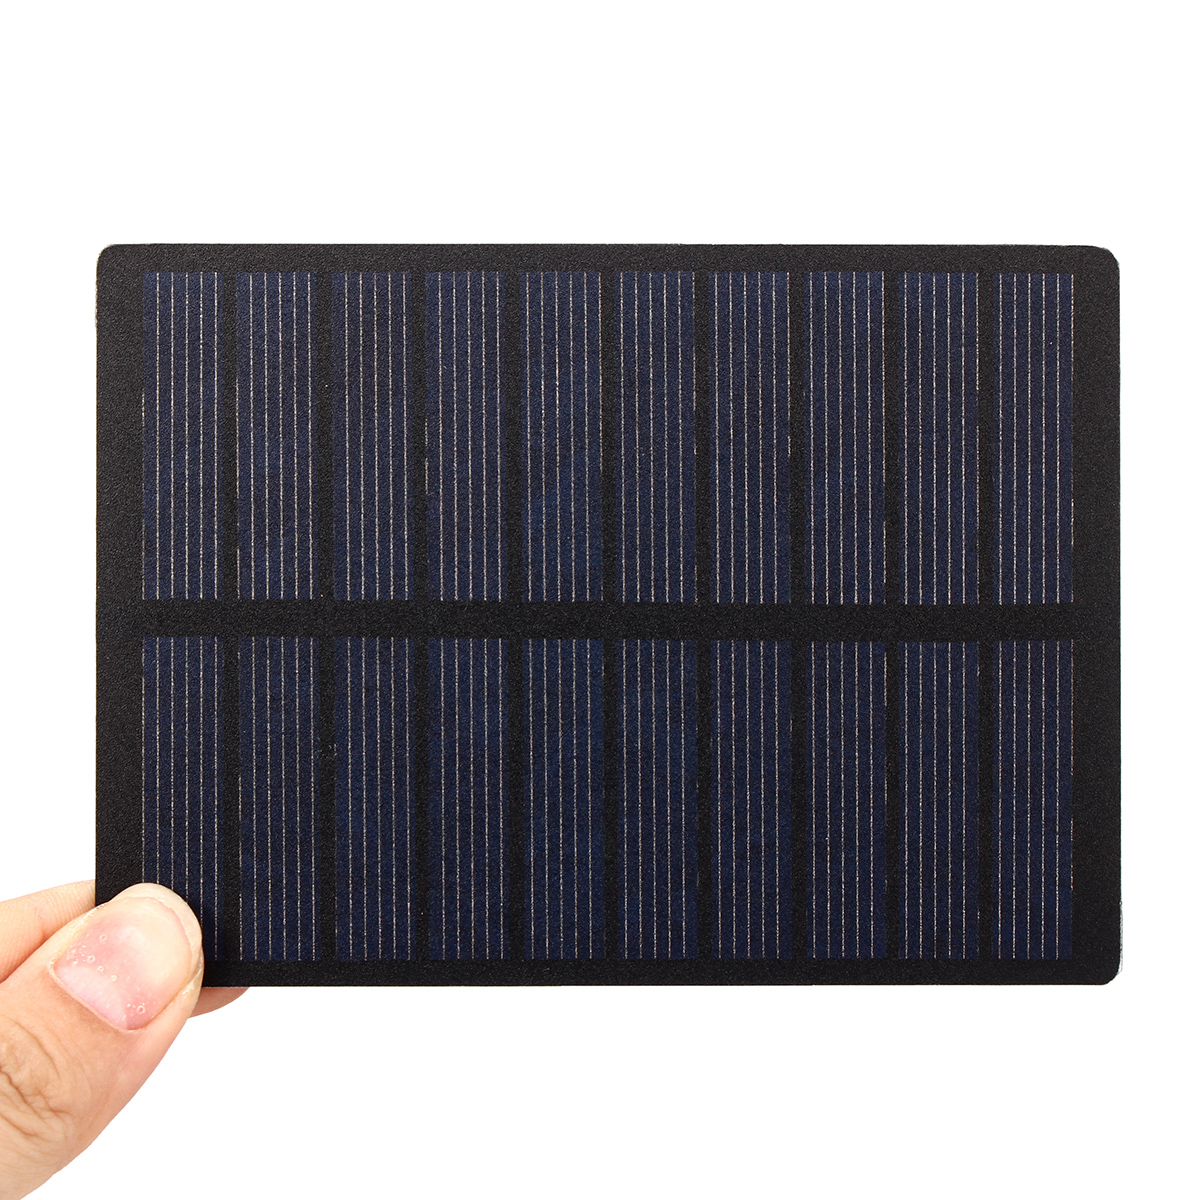 1.3W 5V Polycrystalline Solar Panel DIY Cell Battery Power Charger Module